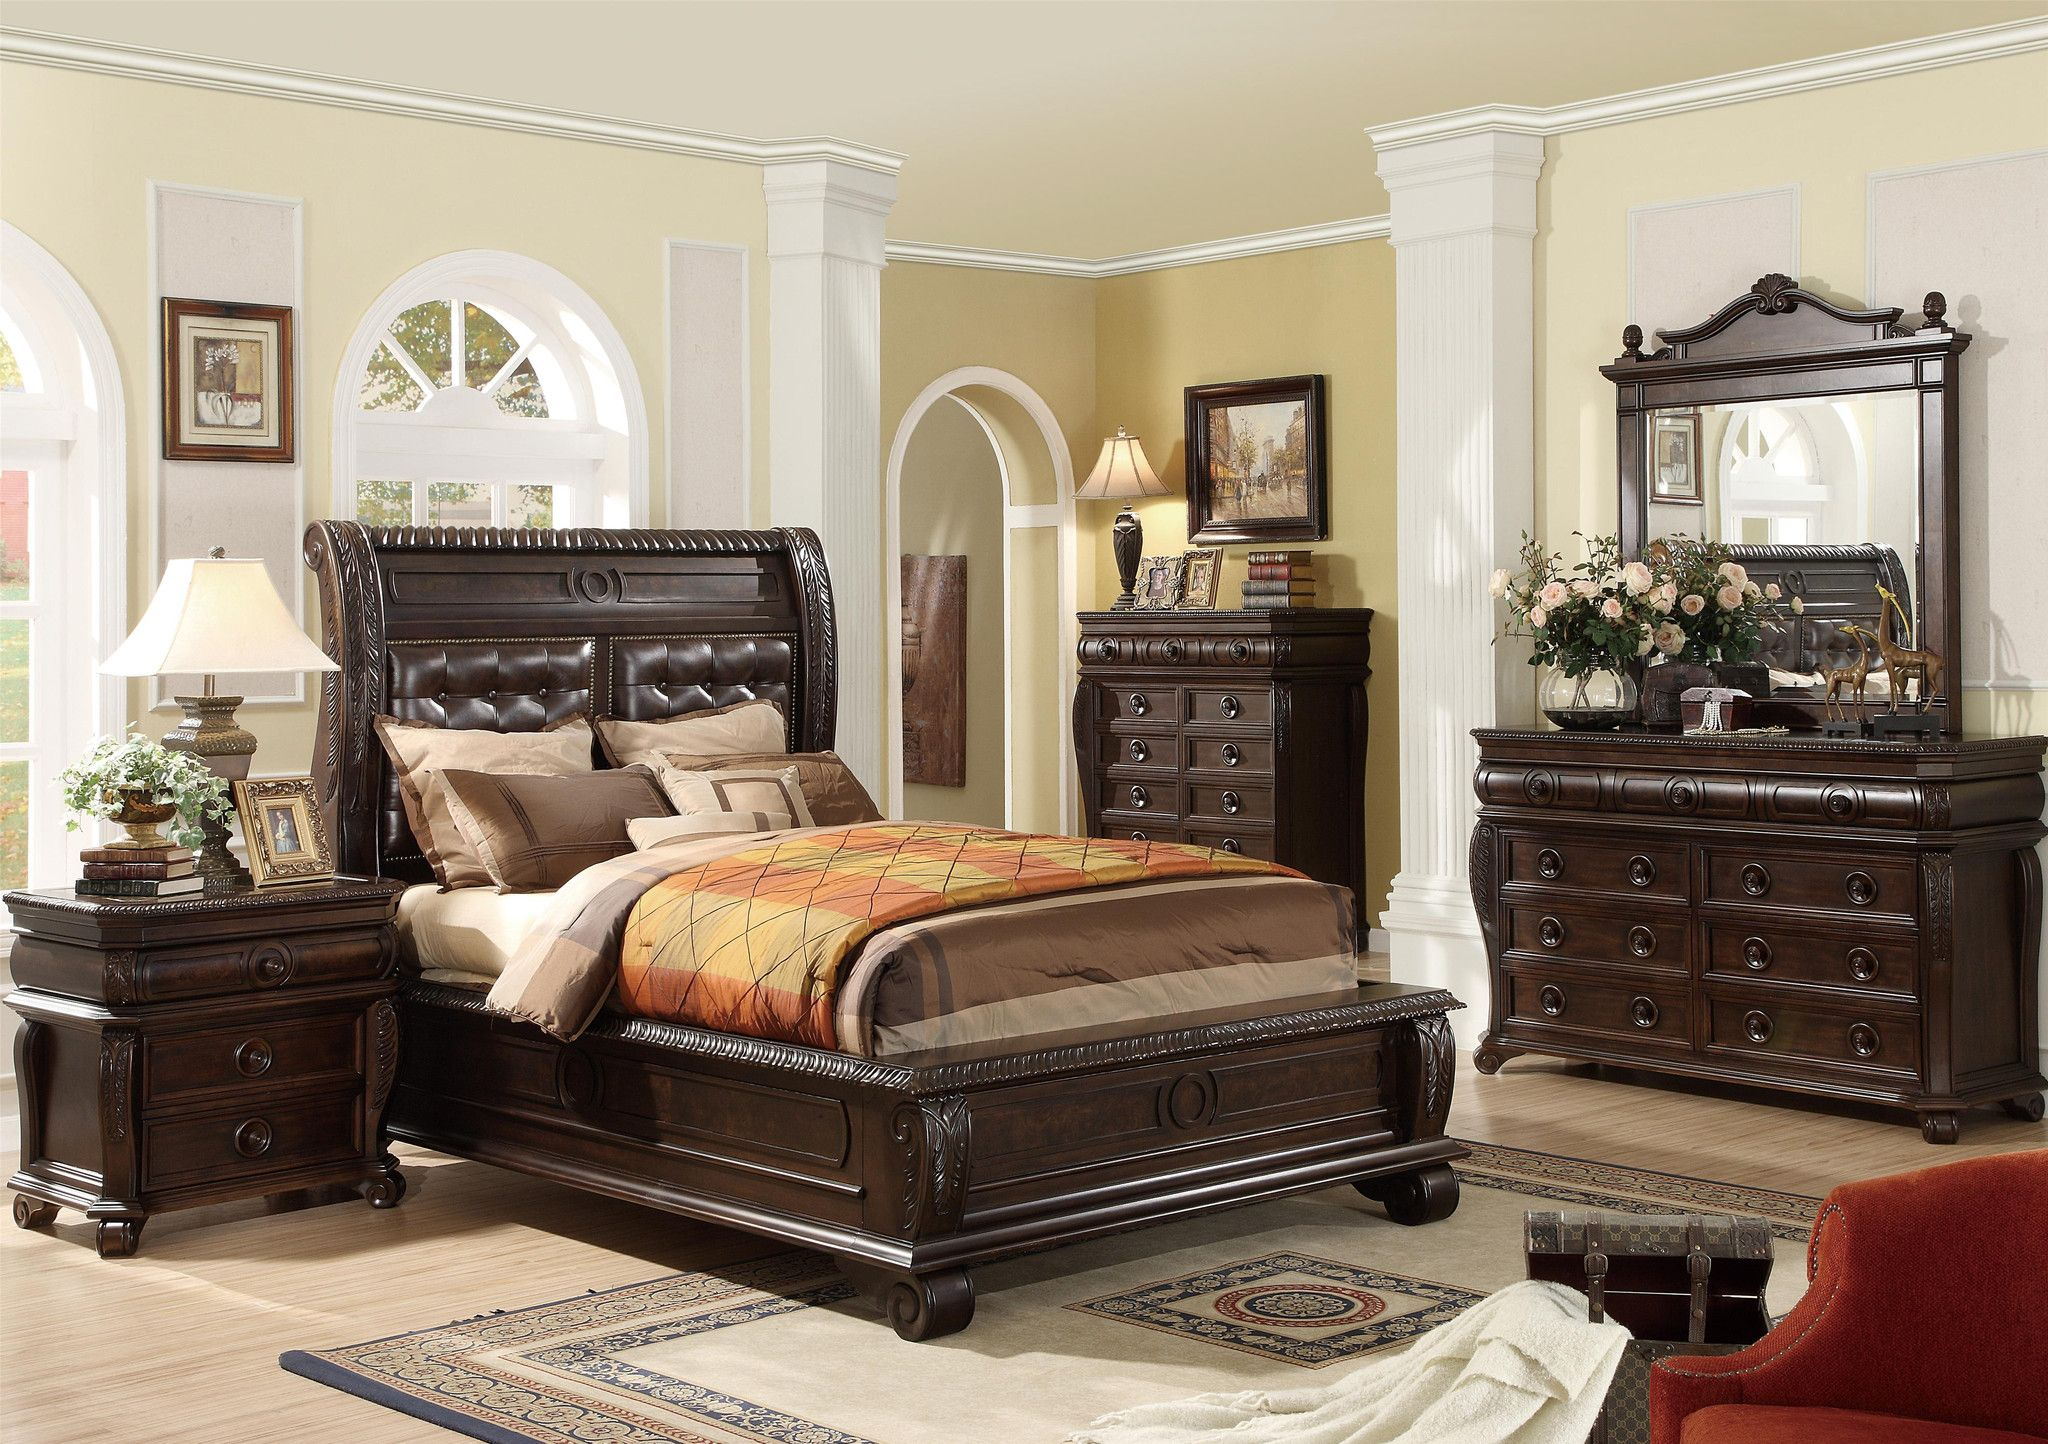 Cherry Mahogany Bedroom Furniture rich with traditional style and a wealth of detail, this bedroom